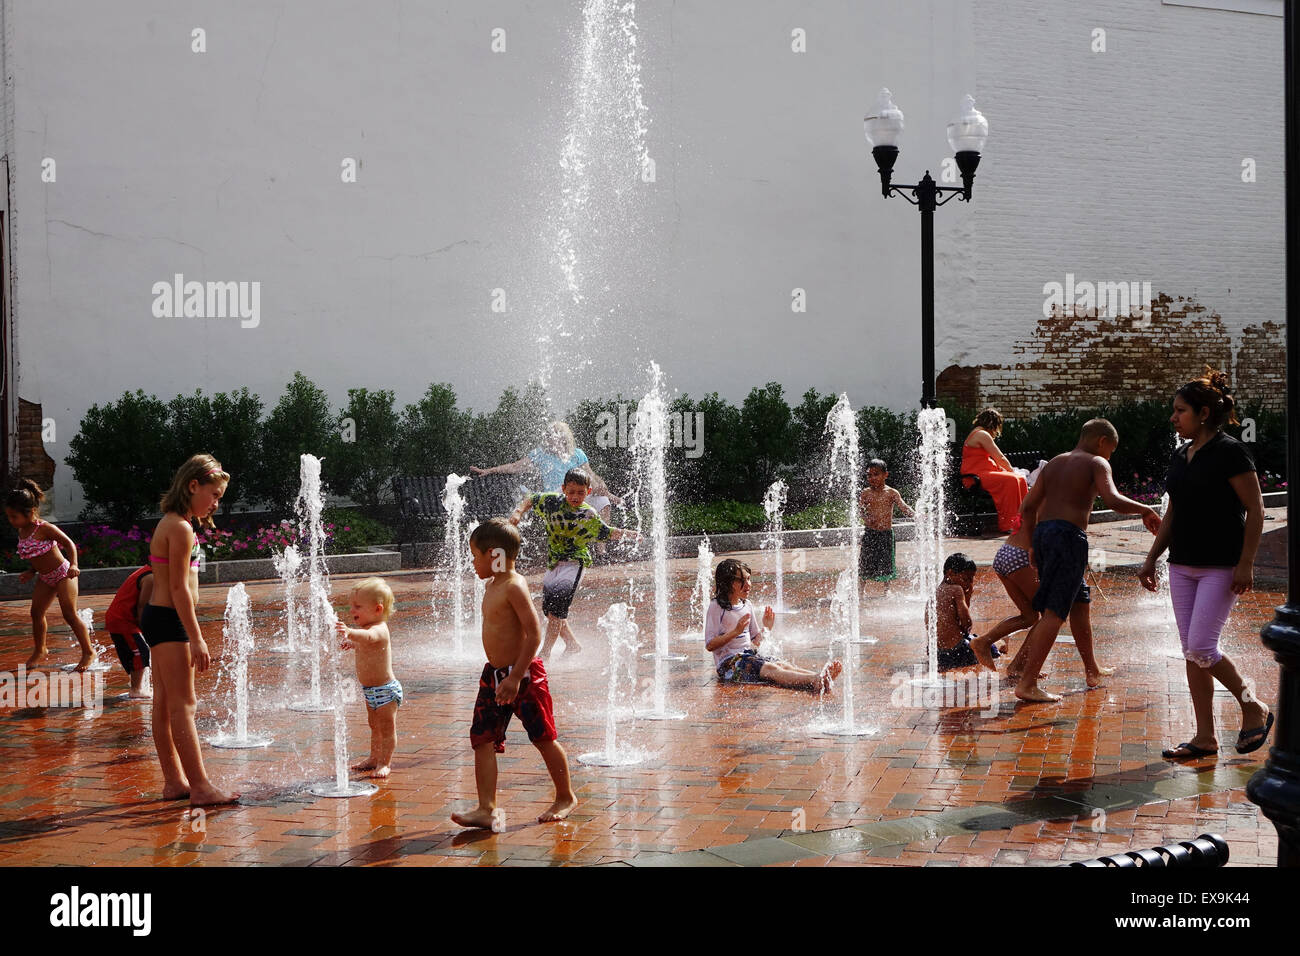 Children enjoying an outdoor fountain on a hot summer day in Old Town, Winchester, Virginia - Stock Image